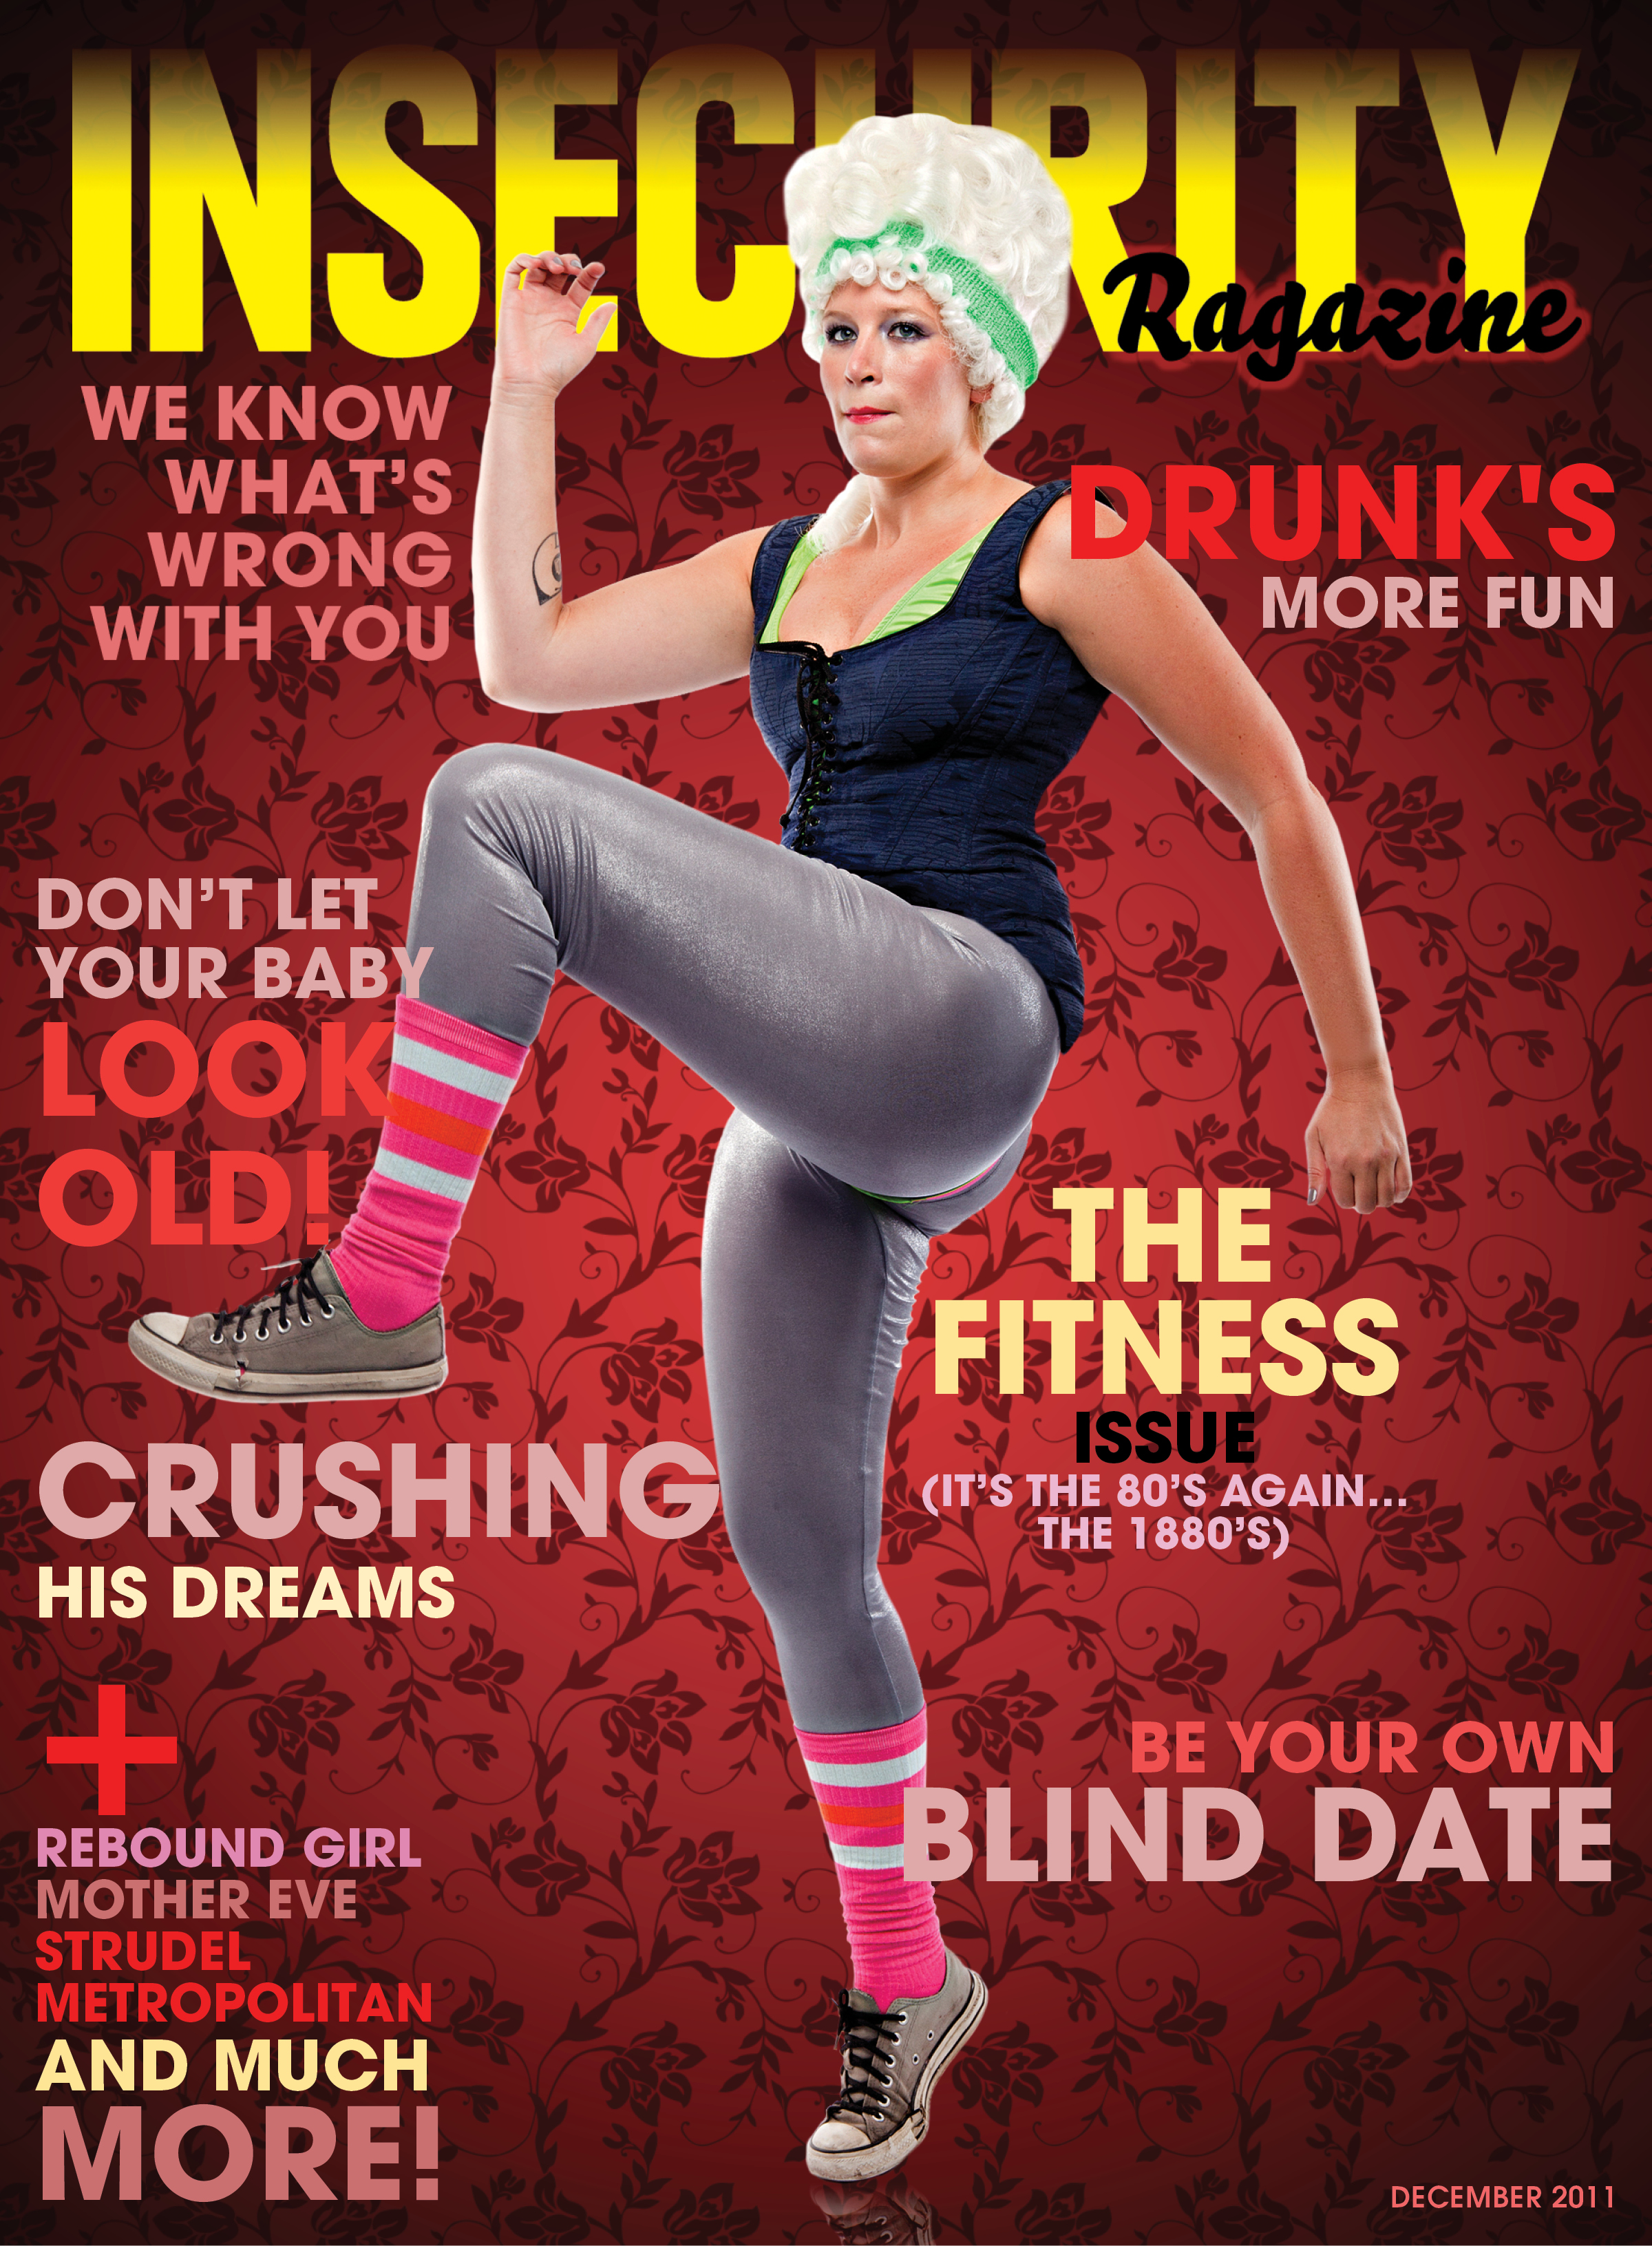 ISSUE 11- THE FITNESS ISSUE